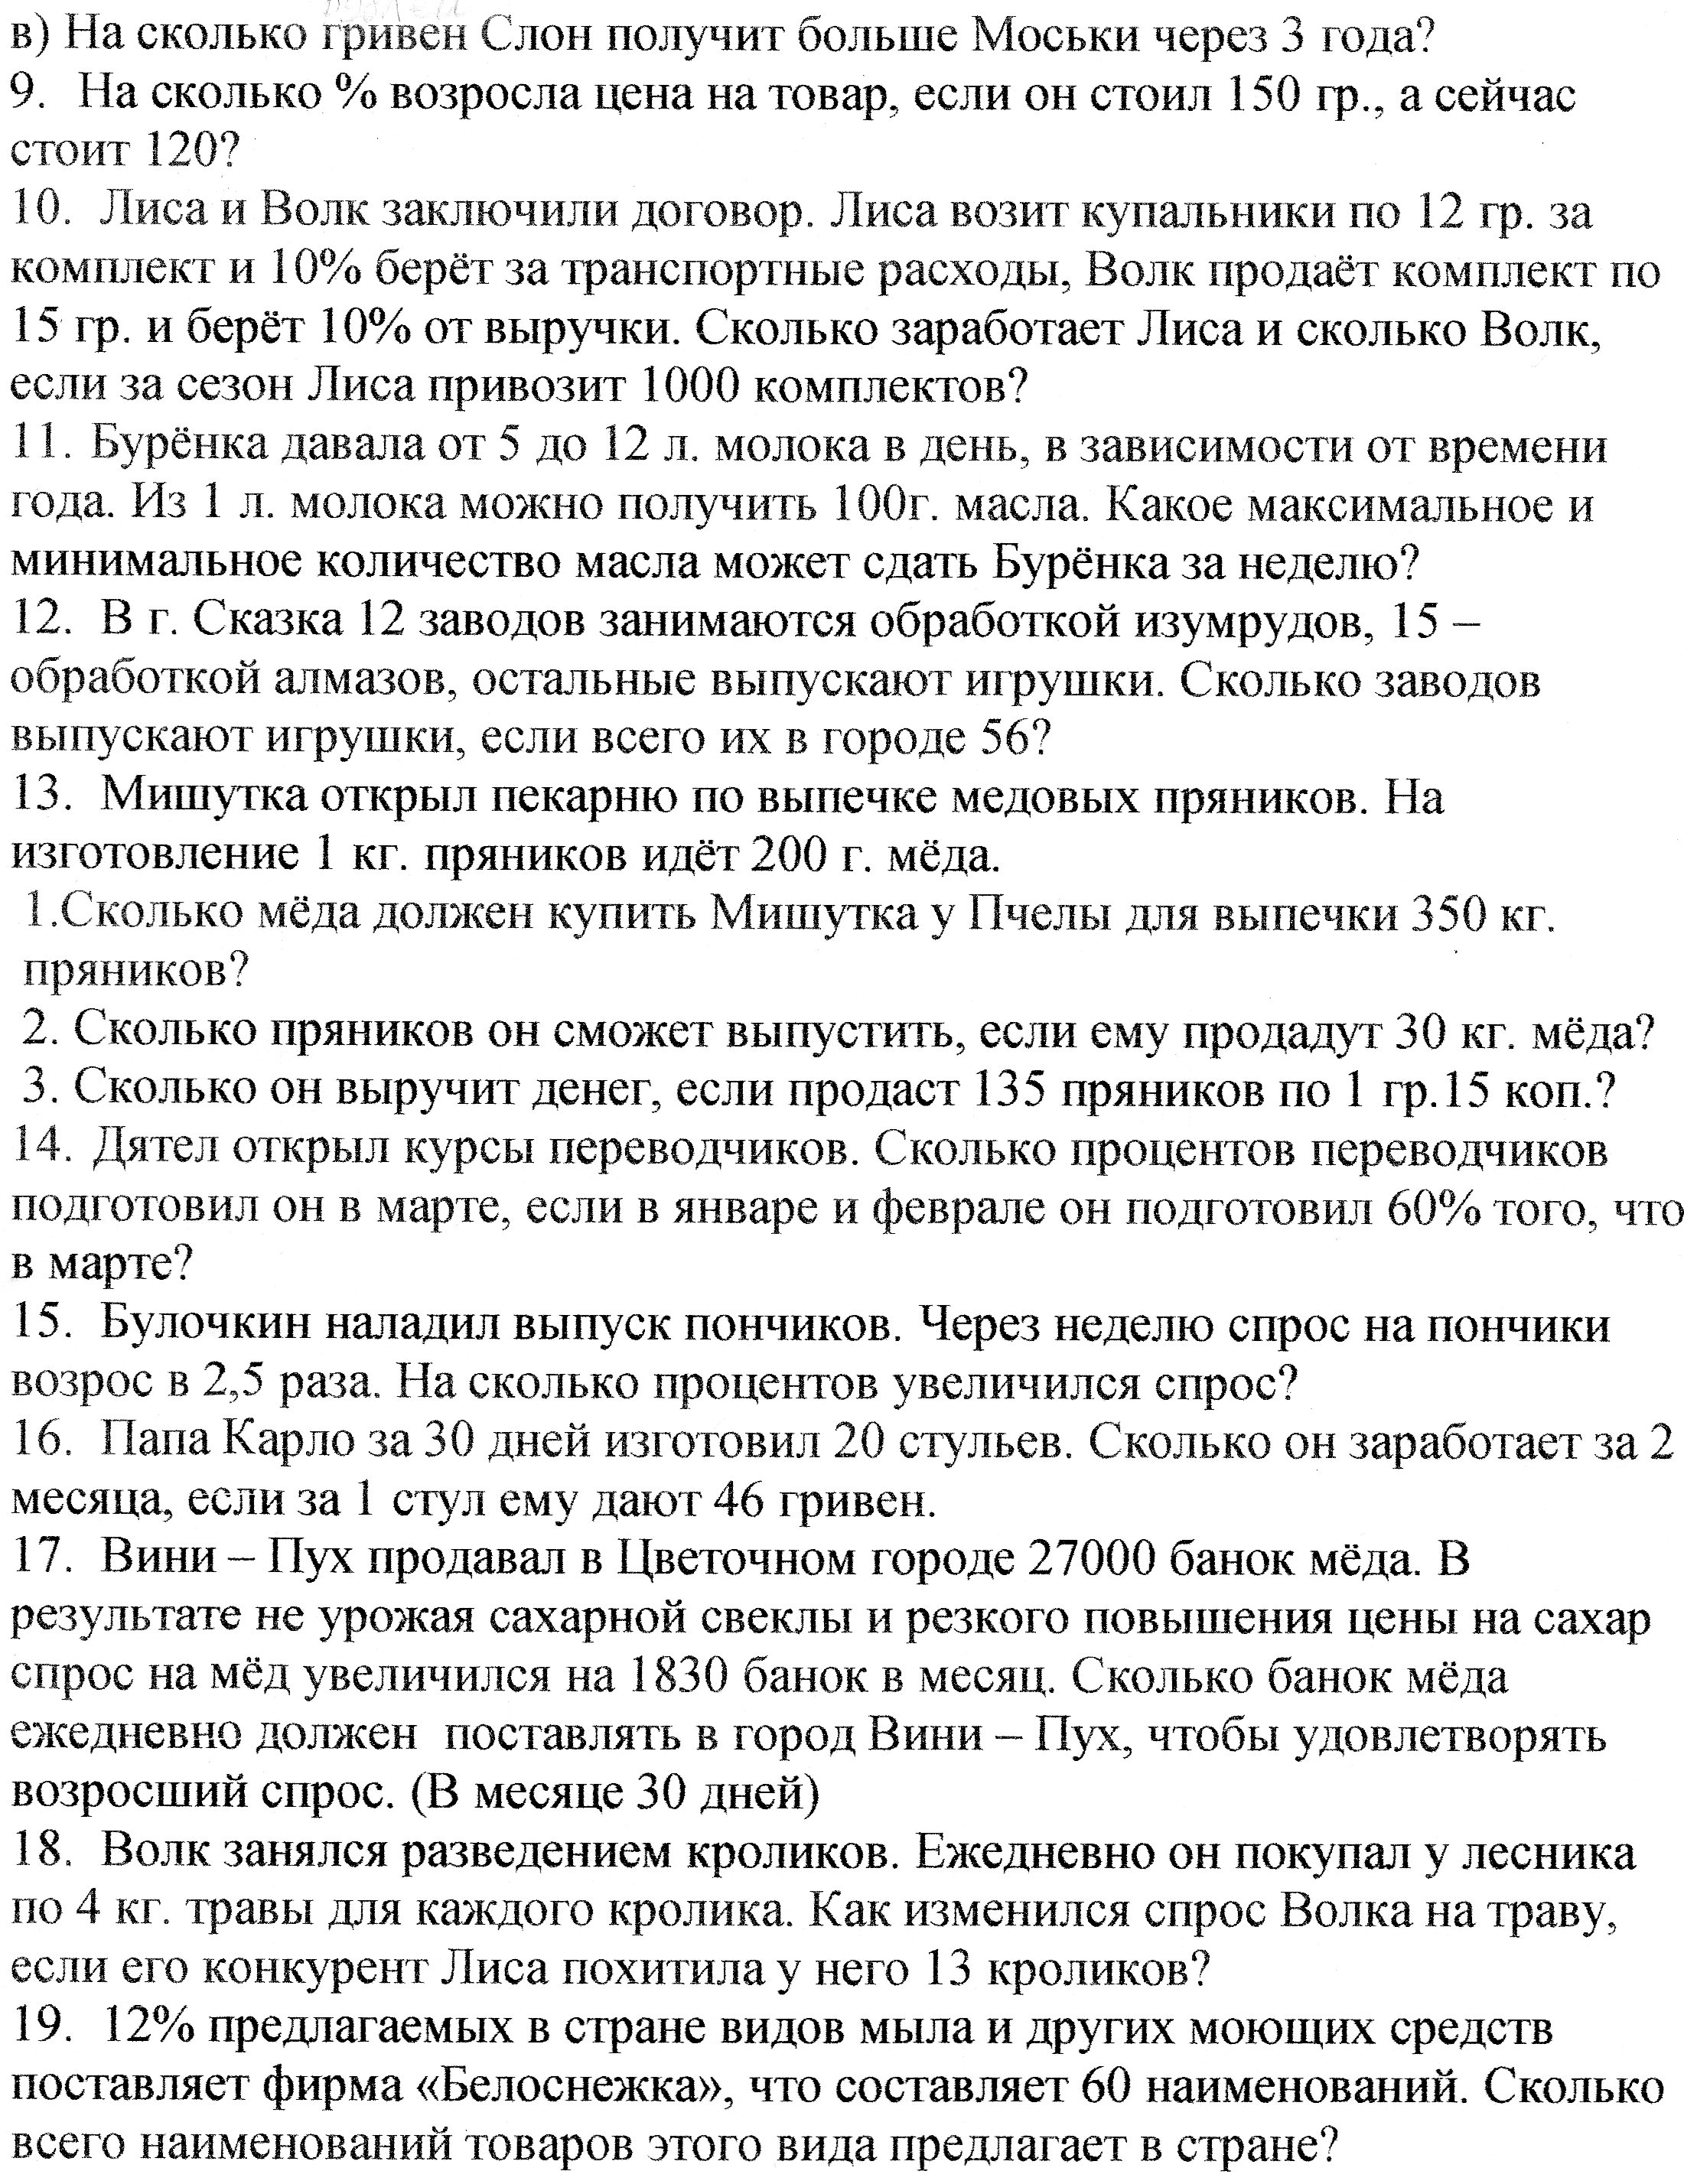 C:\Users\Валентина\Pictures\img155.jpg